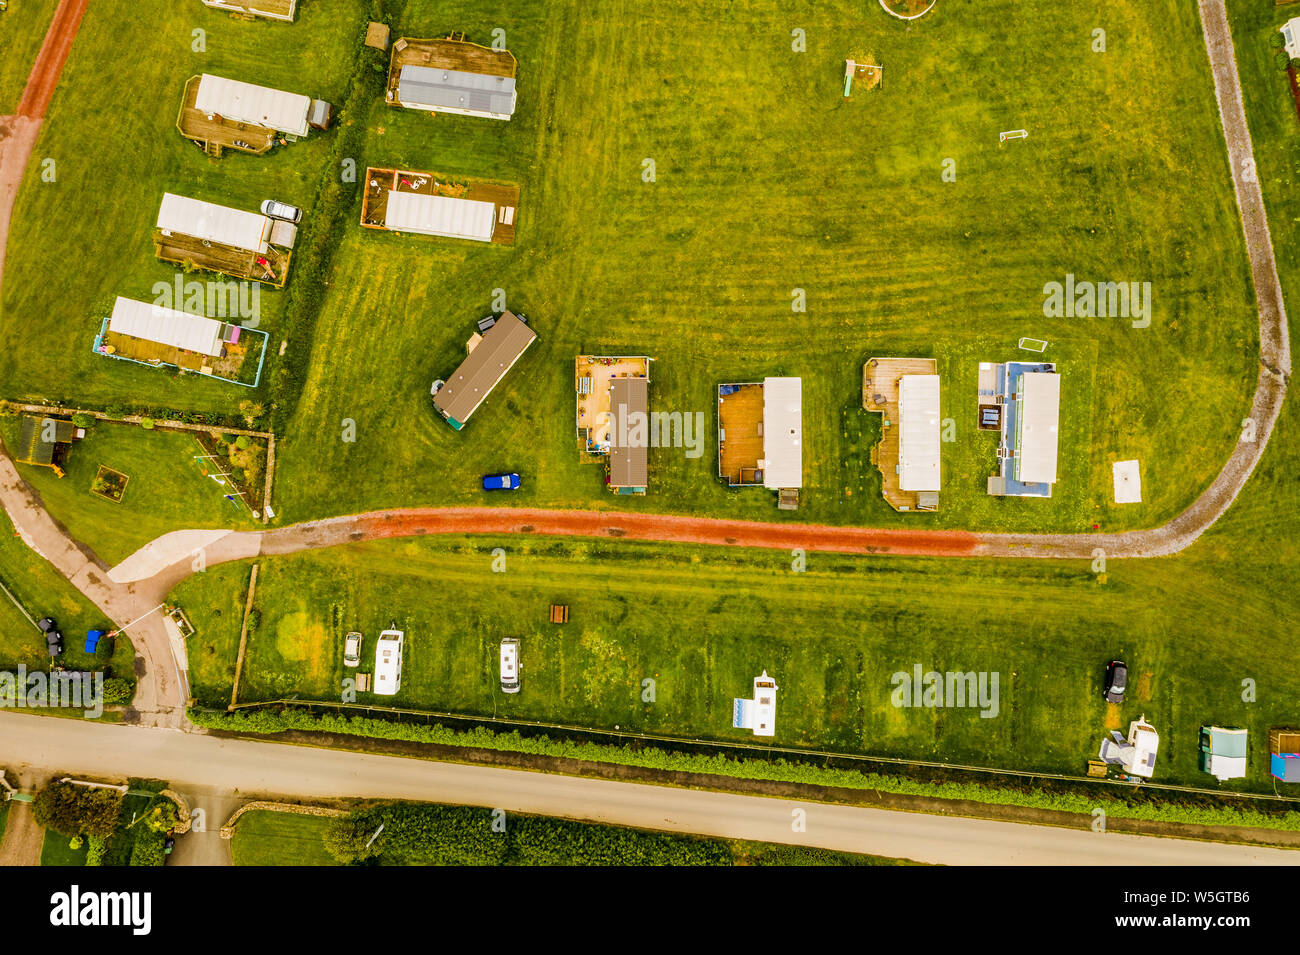 Trailer park aerial view Donabate, Ireland Stock Photo